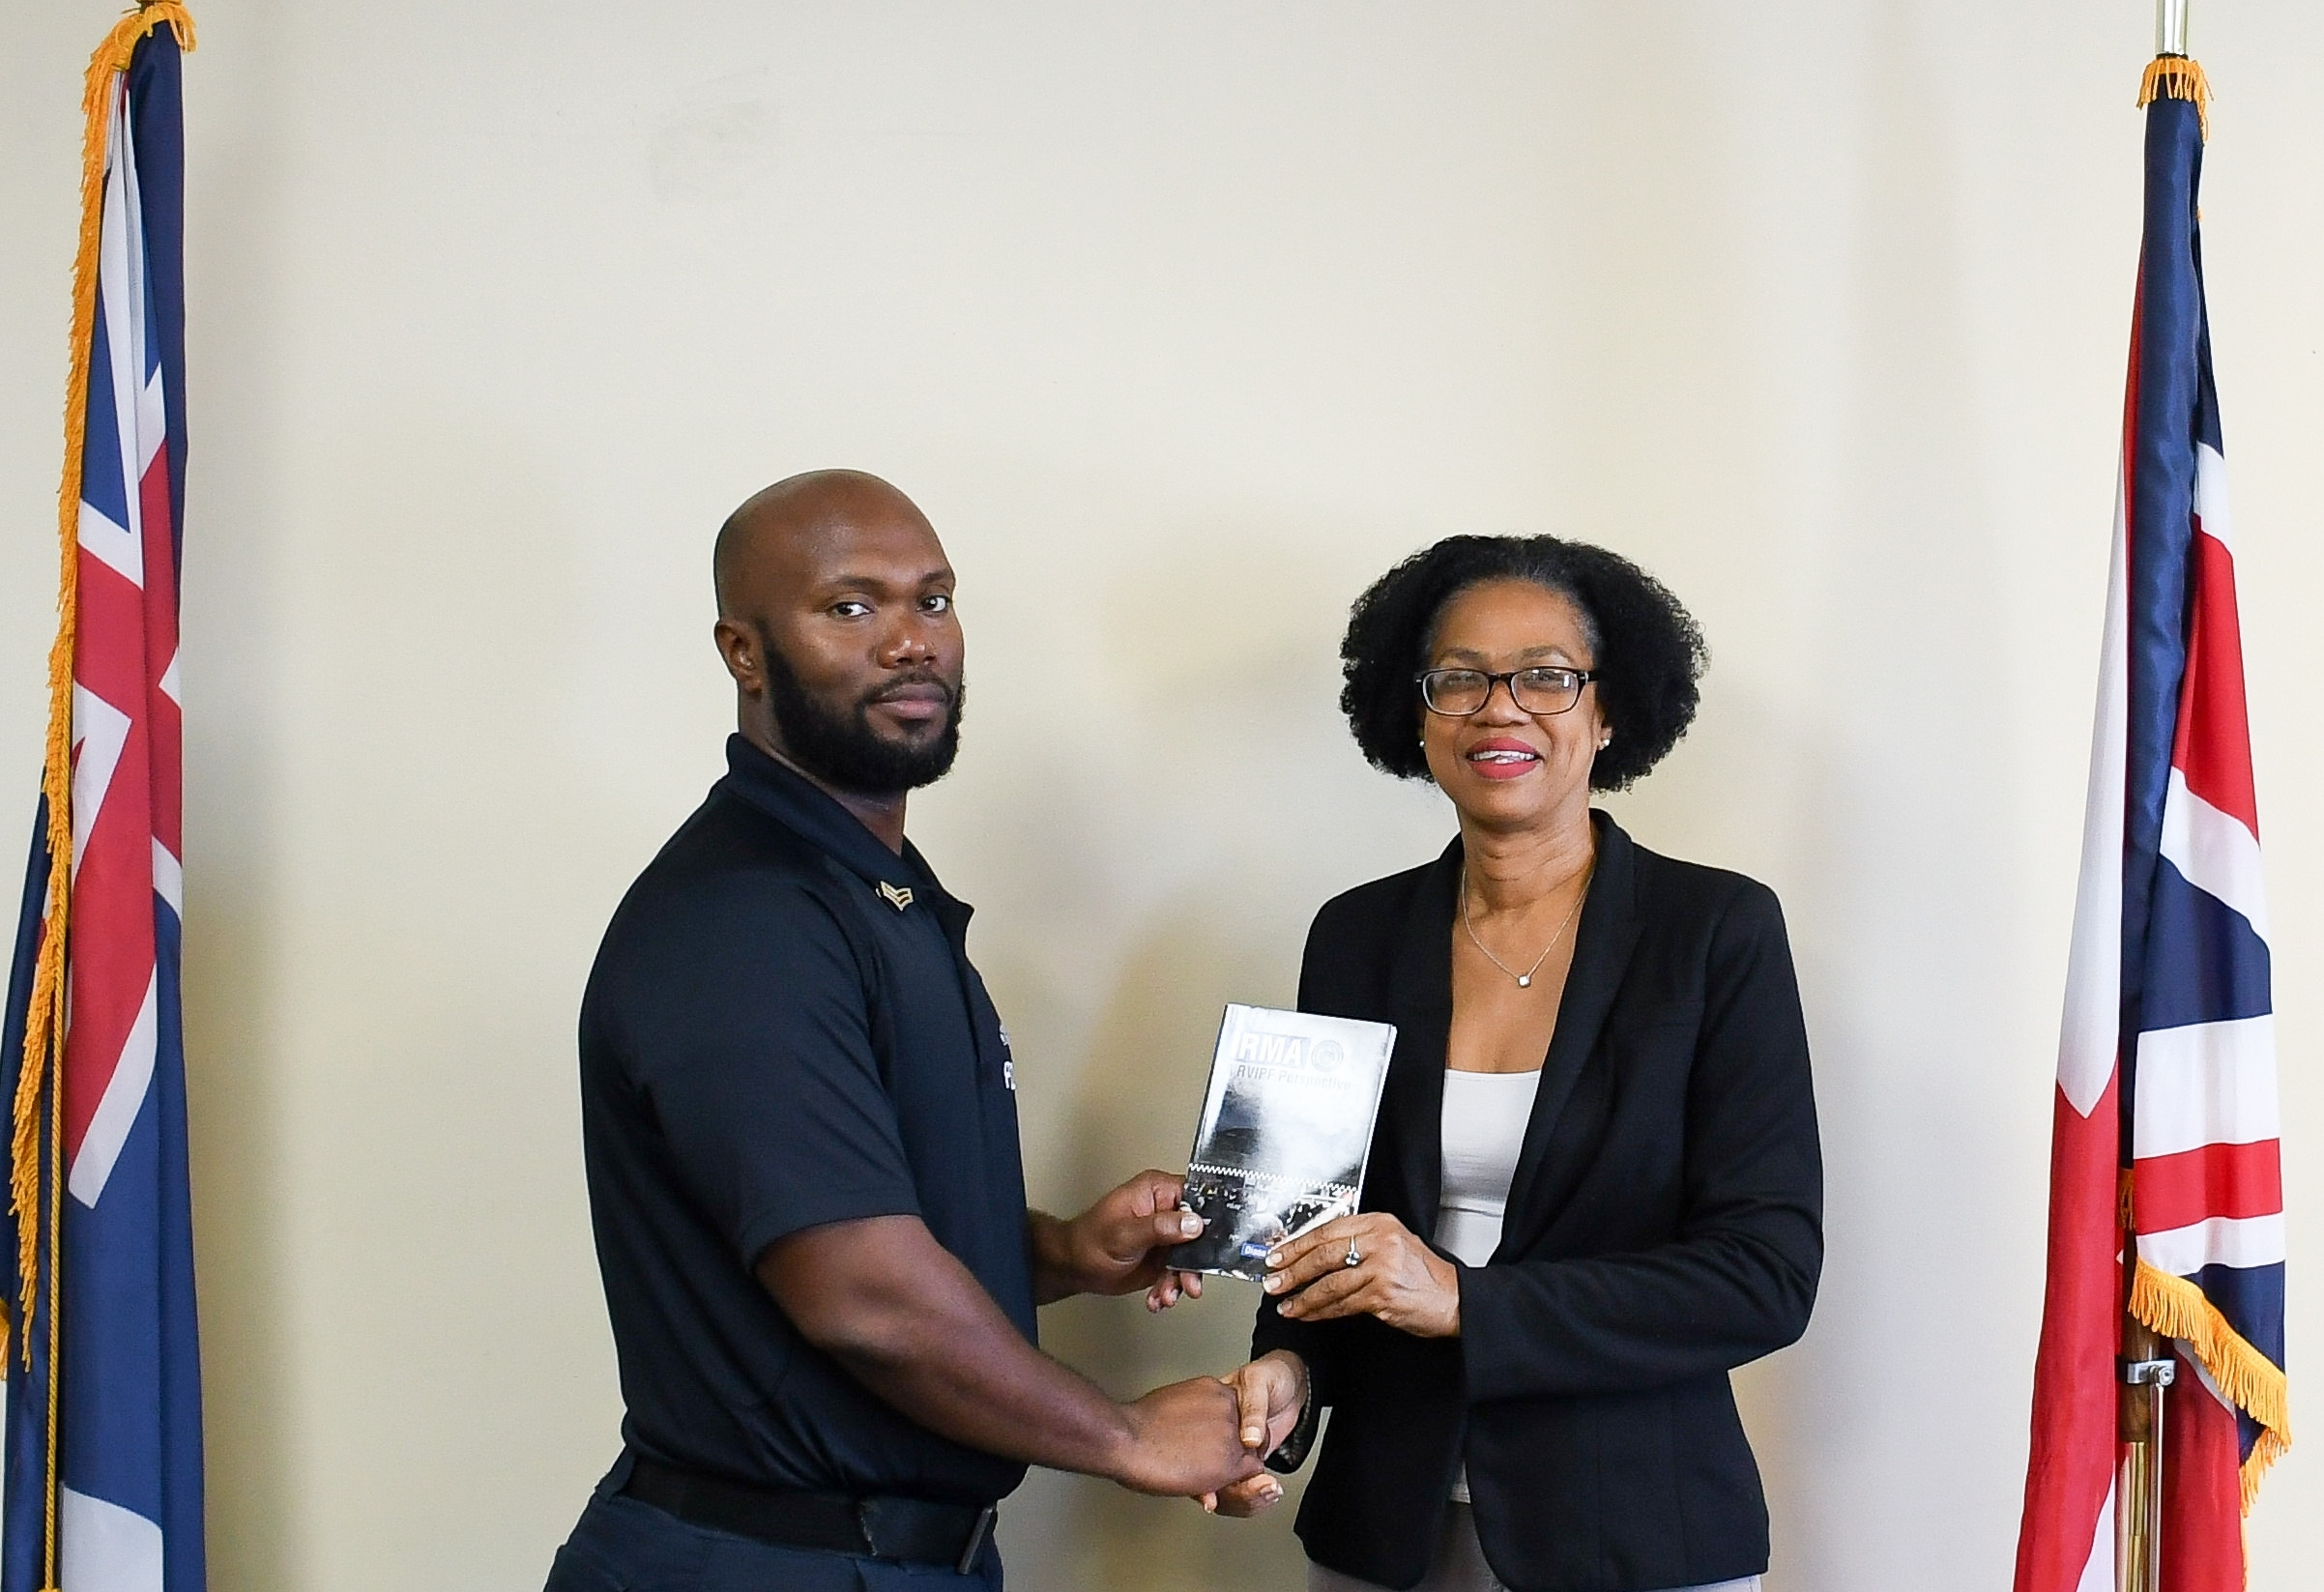 PS Maragh was also presented with a copy of the book